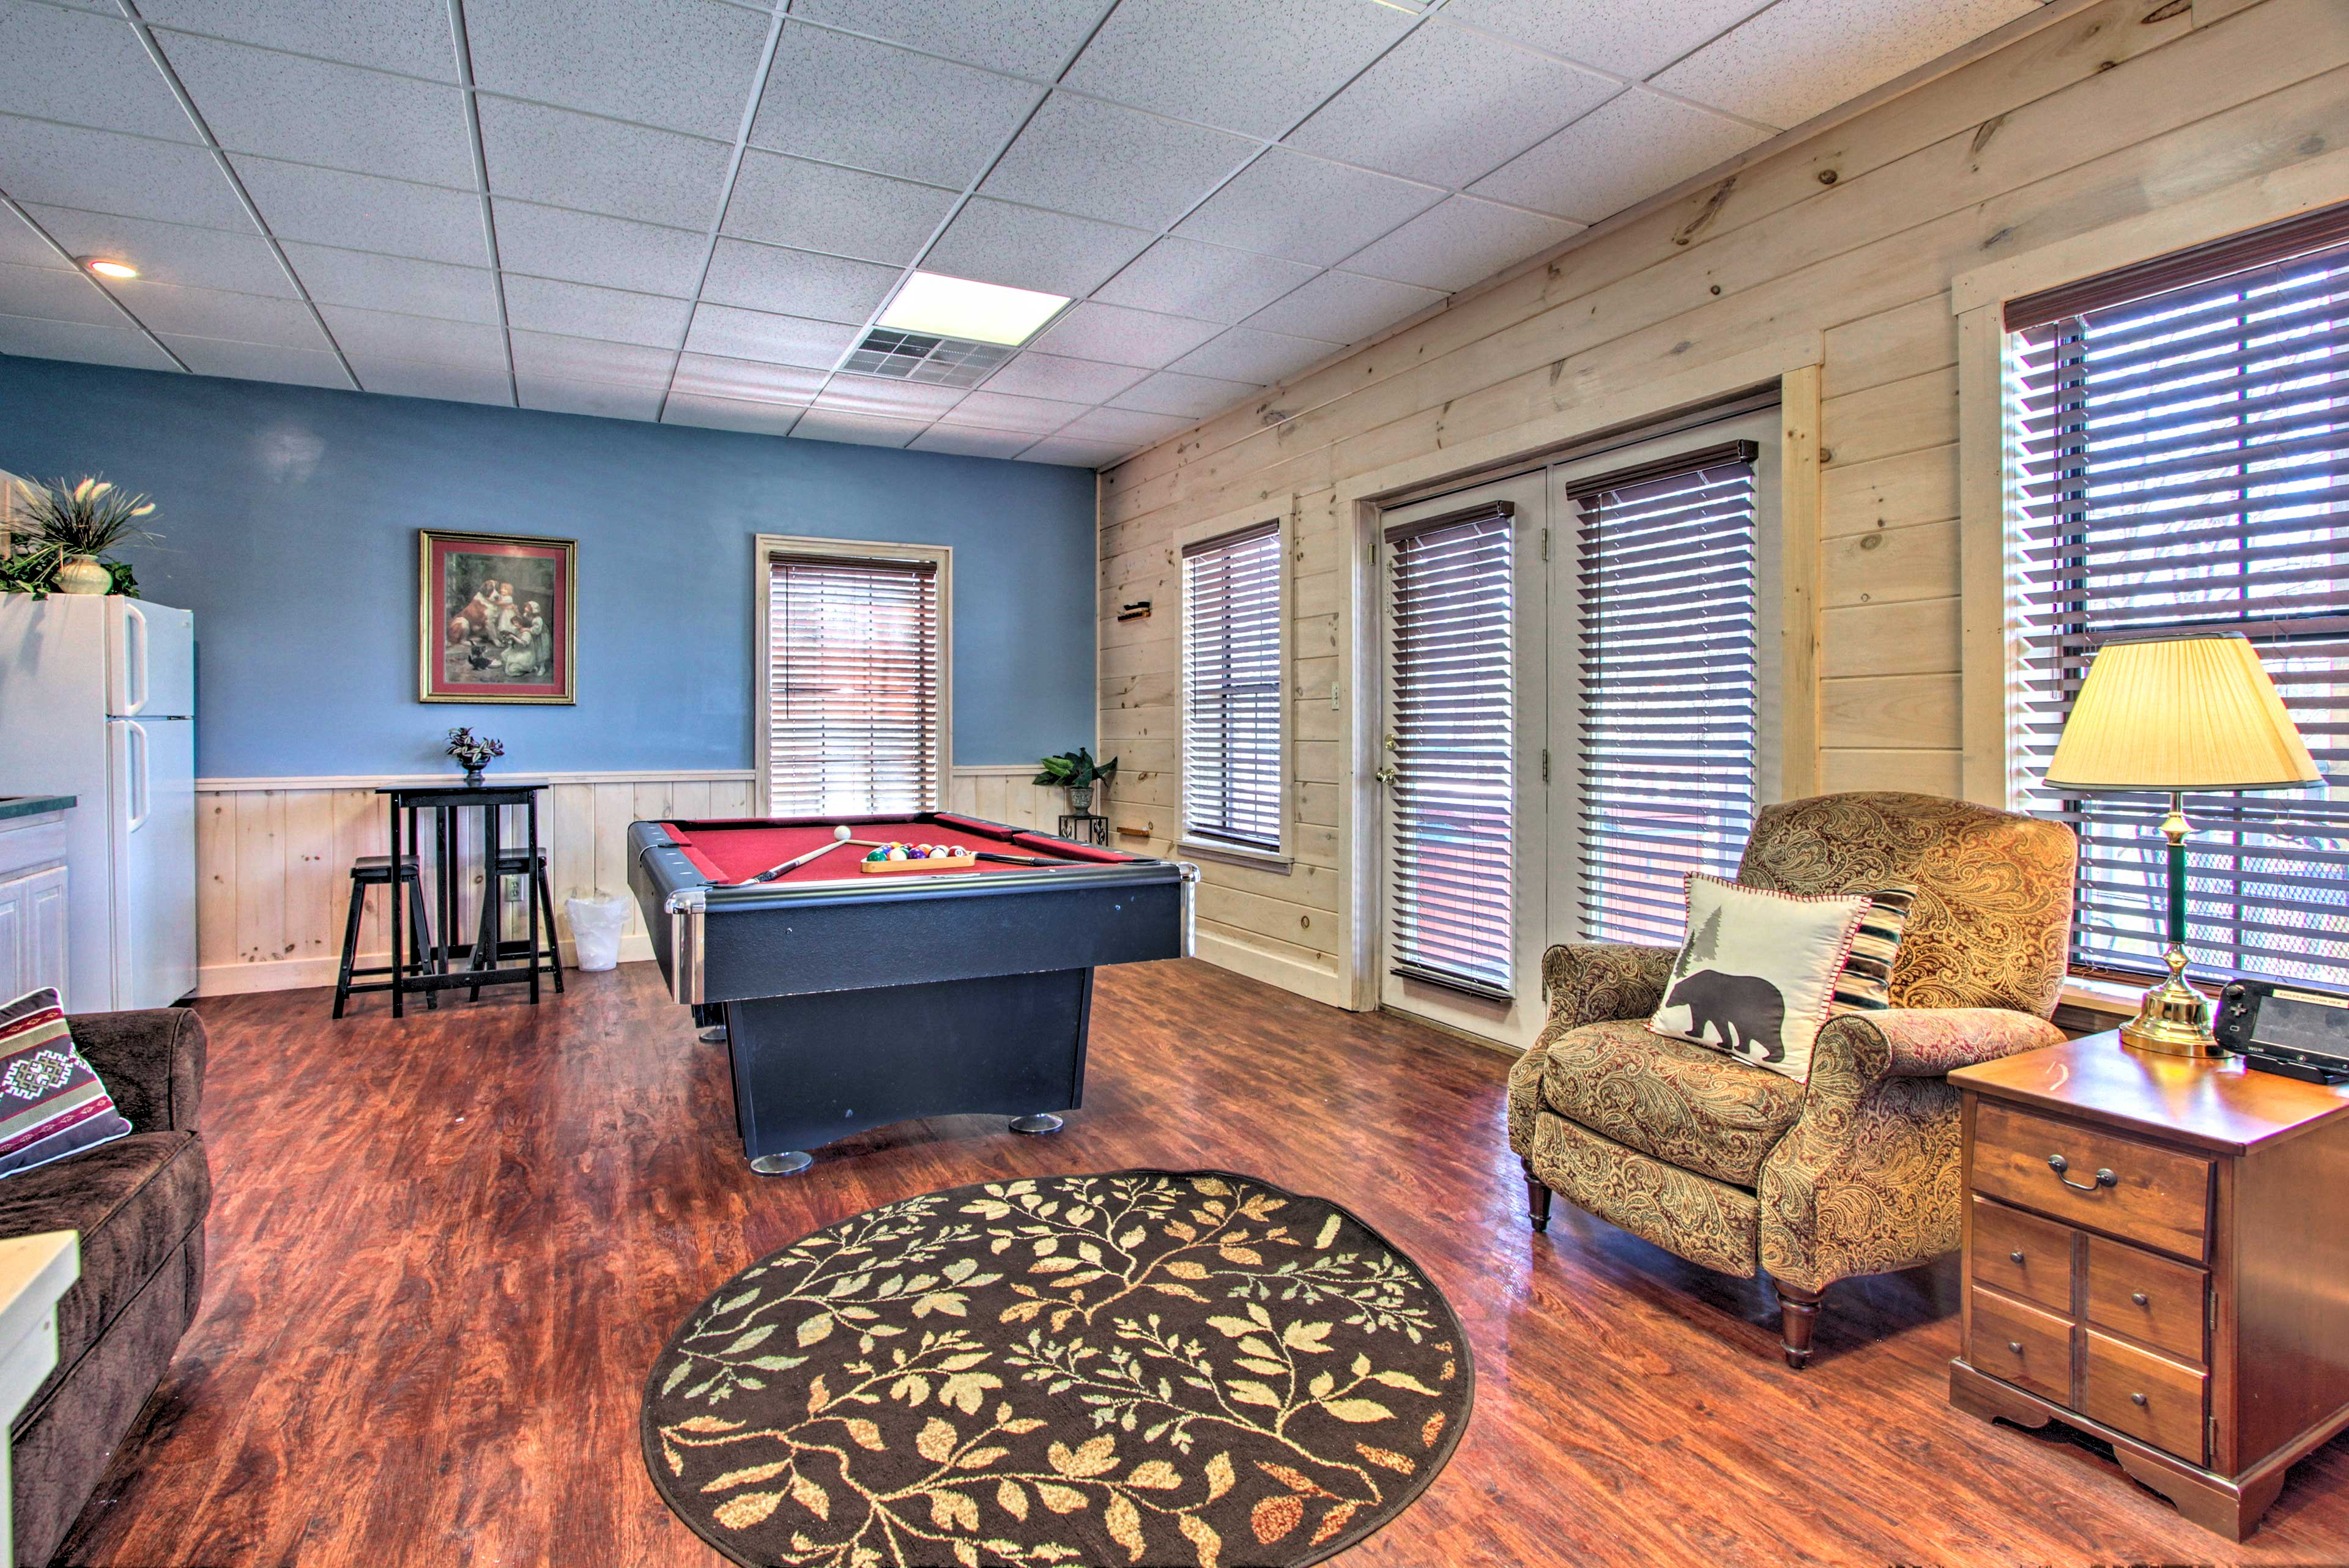 Downstairs, a game room with a pool table awaits!